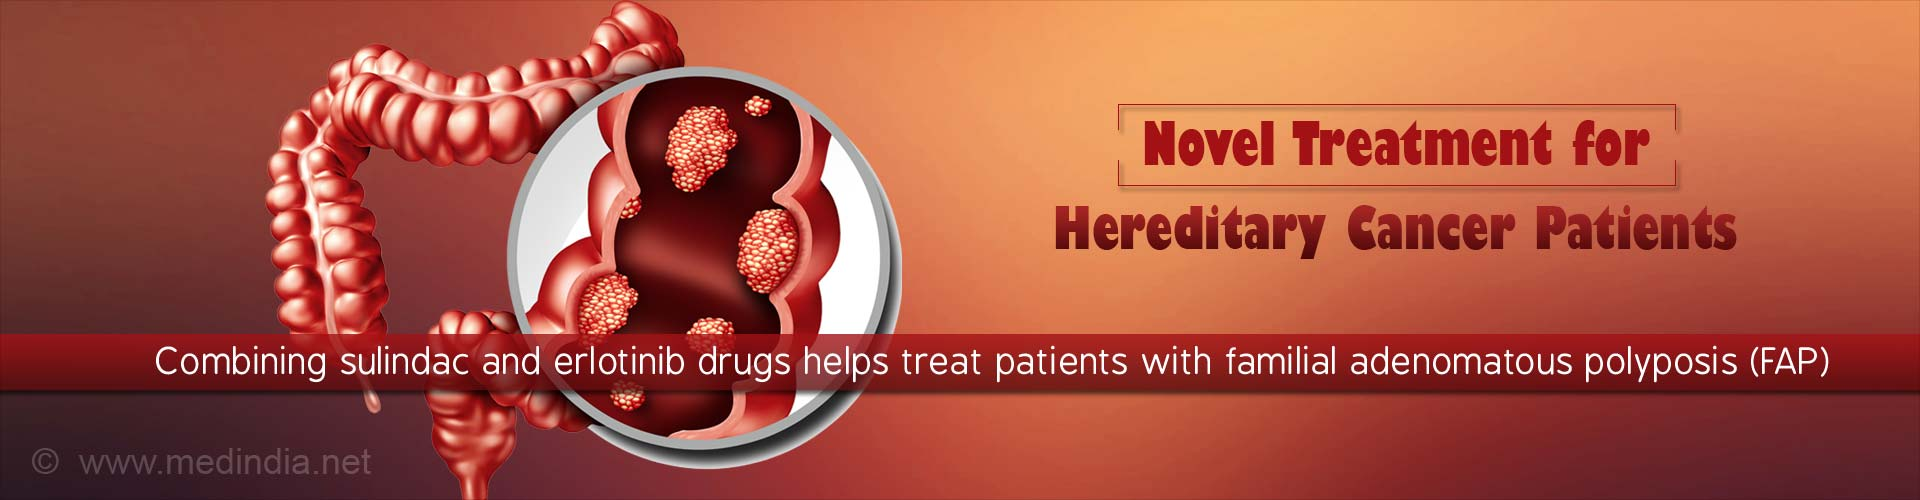 New Prevention Treatment for Hereditary Cancer Patients